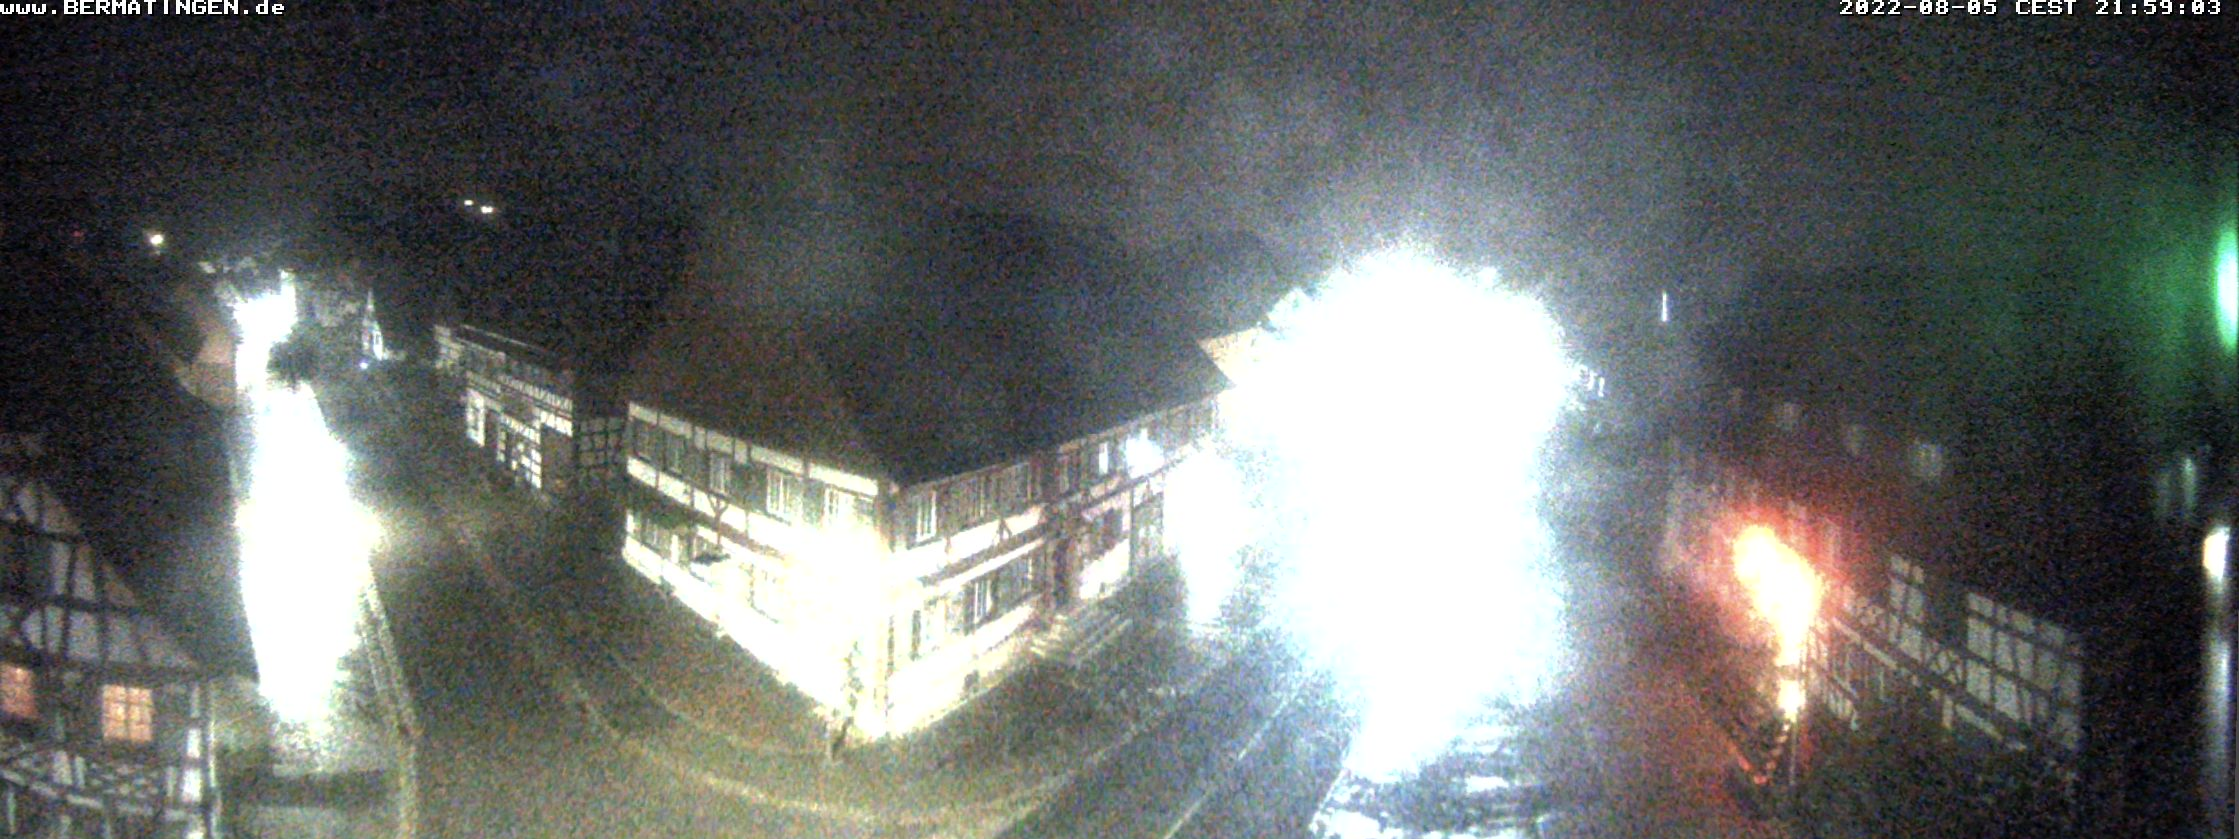 Webcam Gemeinde Bermatingen